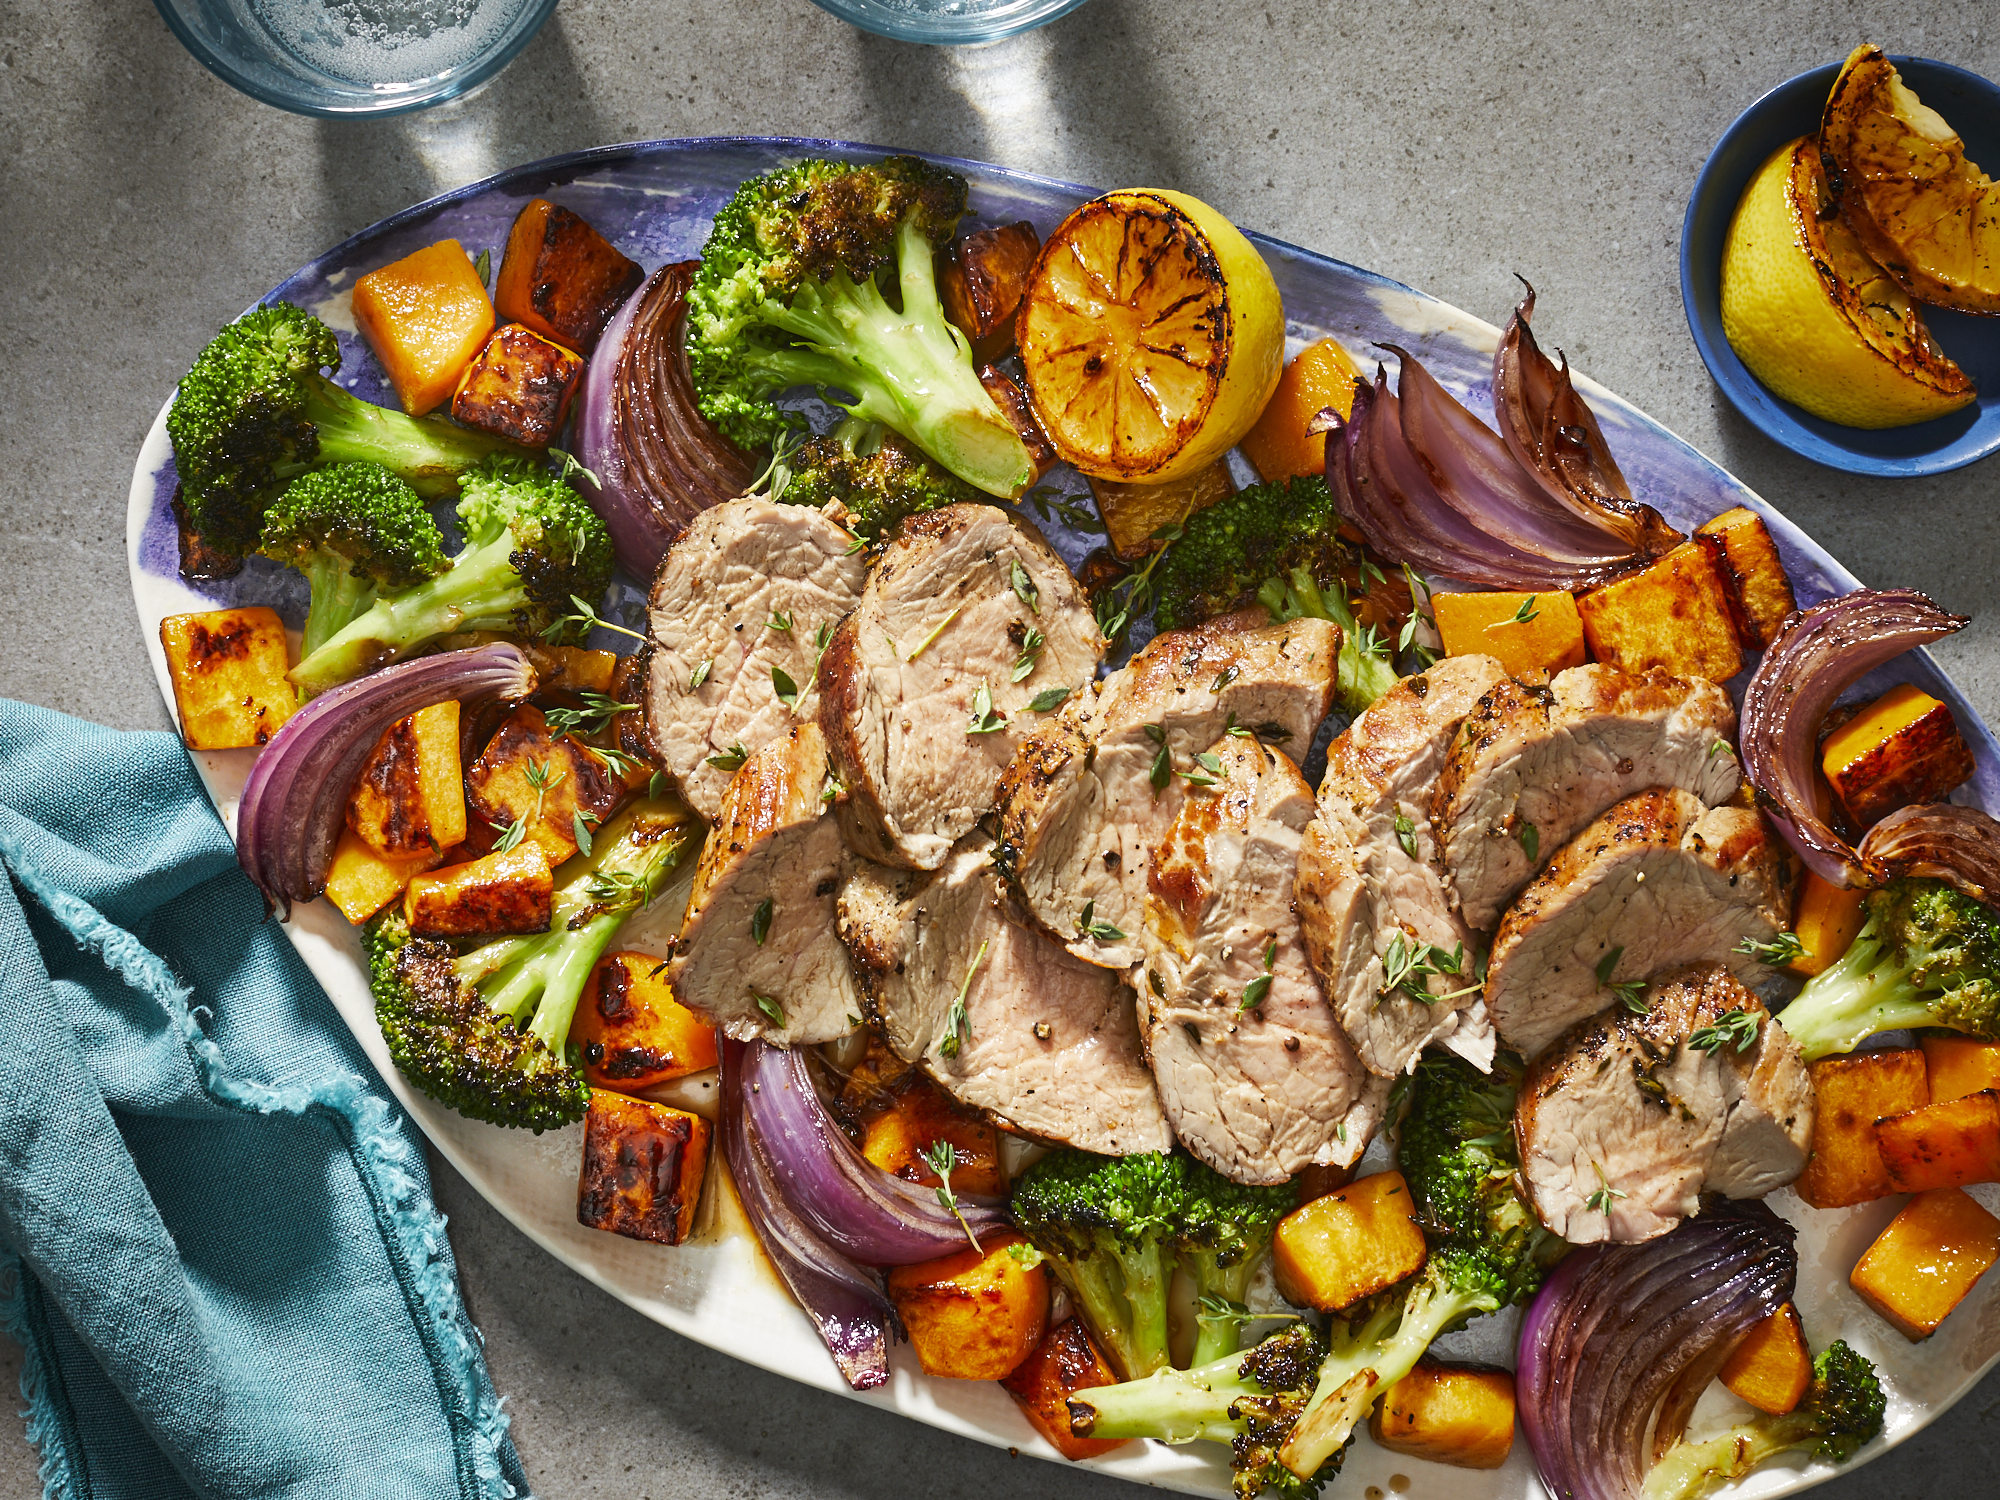 mr-Sheet Pan Pork Tenderloin with Broccoli and Butternut Squash Image